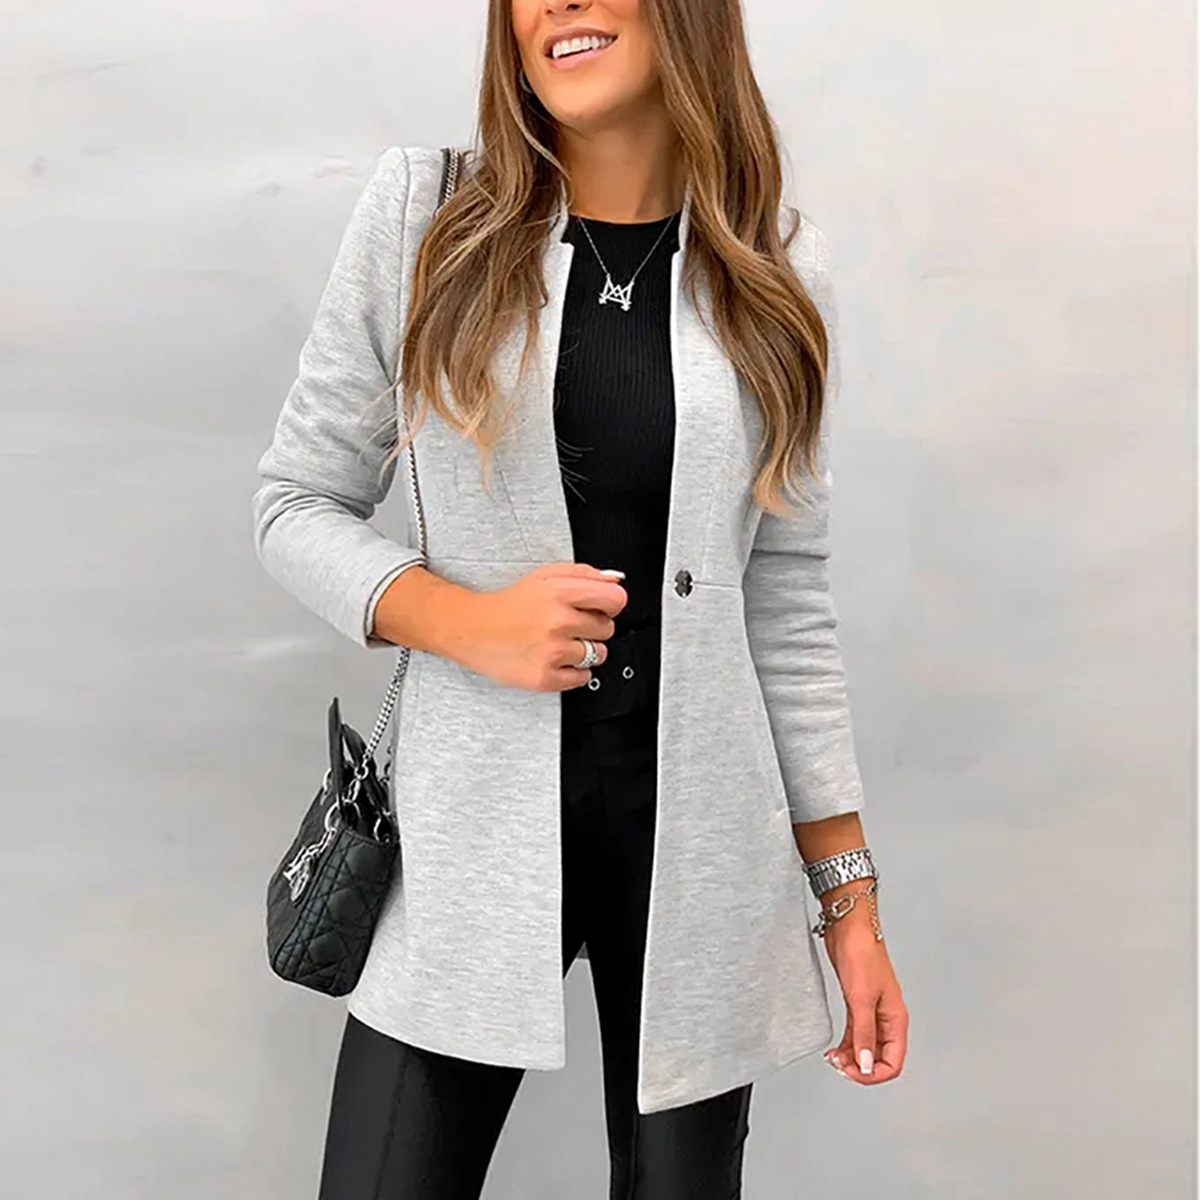 Elegant Women Blazer Suits 2020 New Autumn Winter Notched Collar Long Sleeve Slim Suit Jacket Office Ladies Black Gray Suit Coat